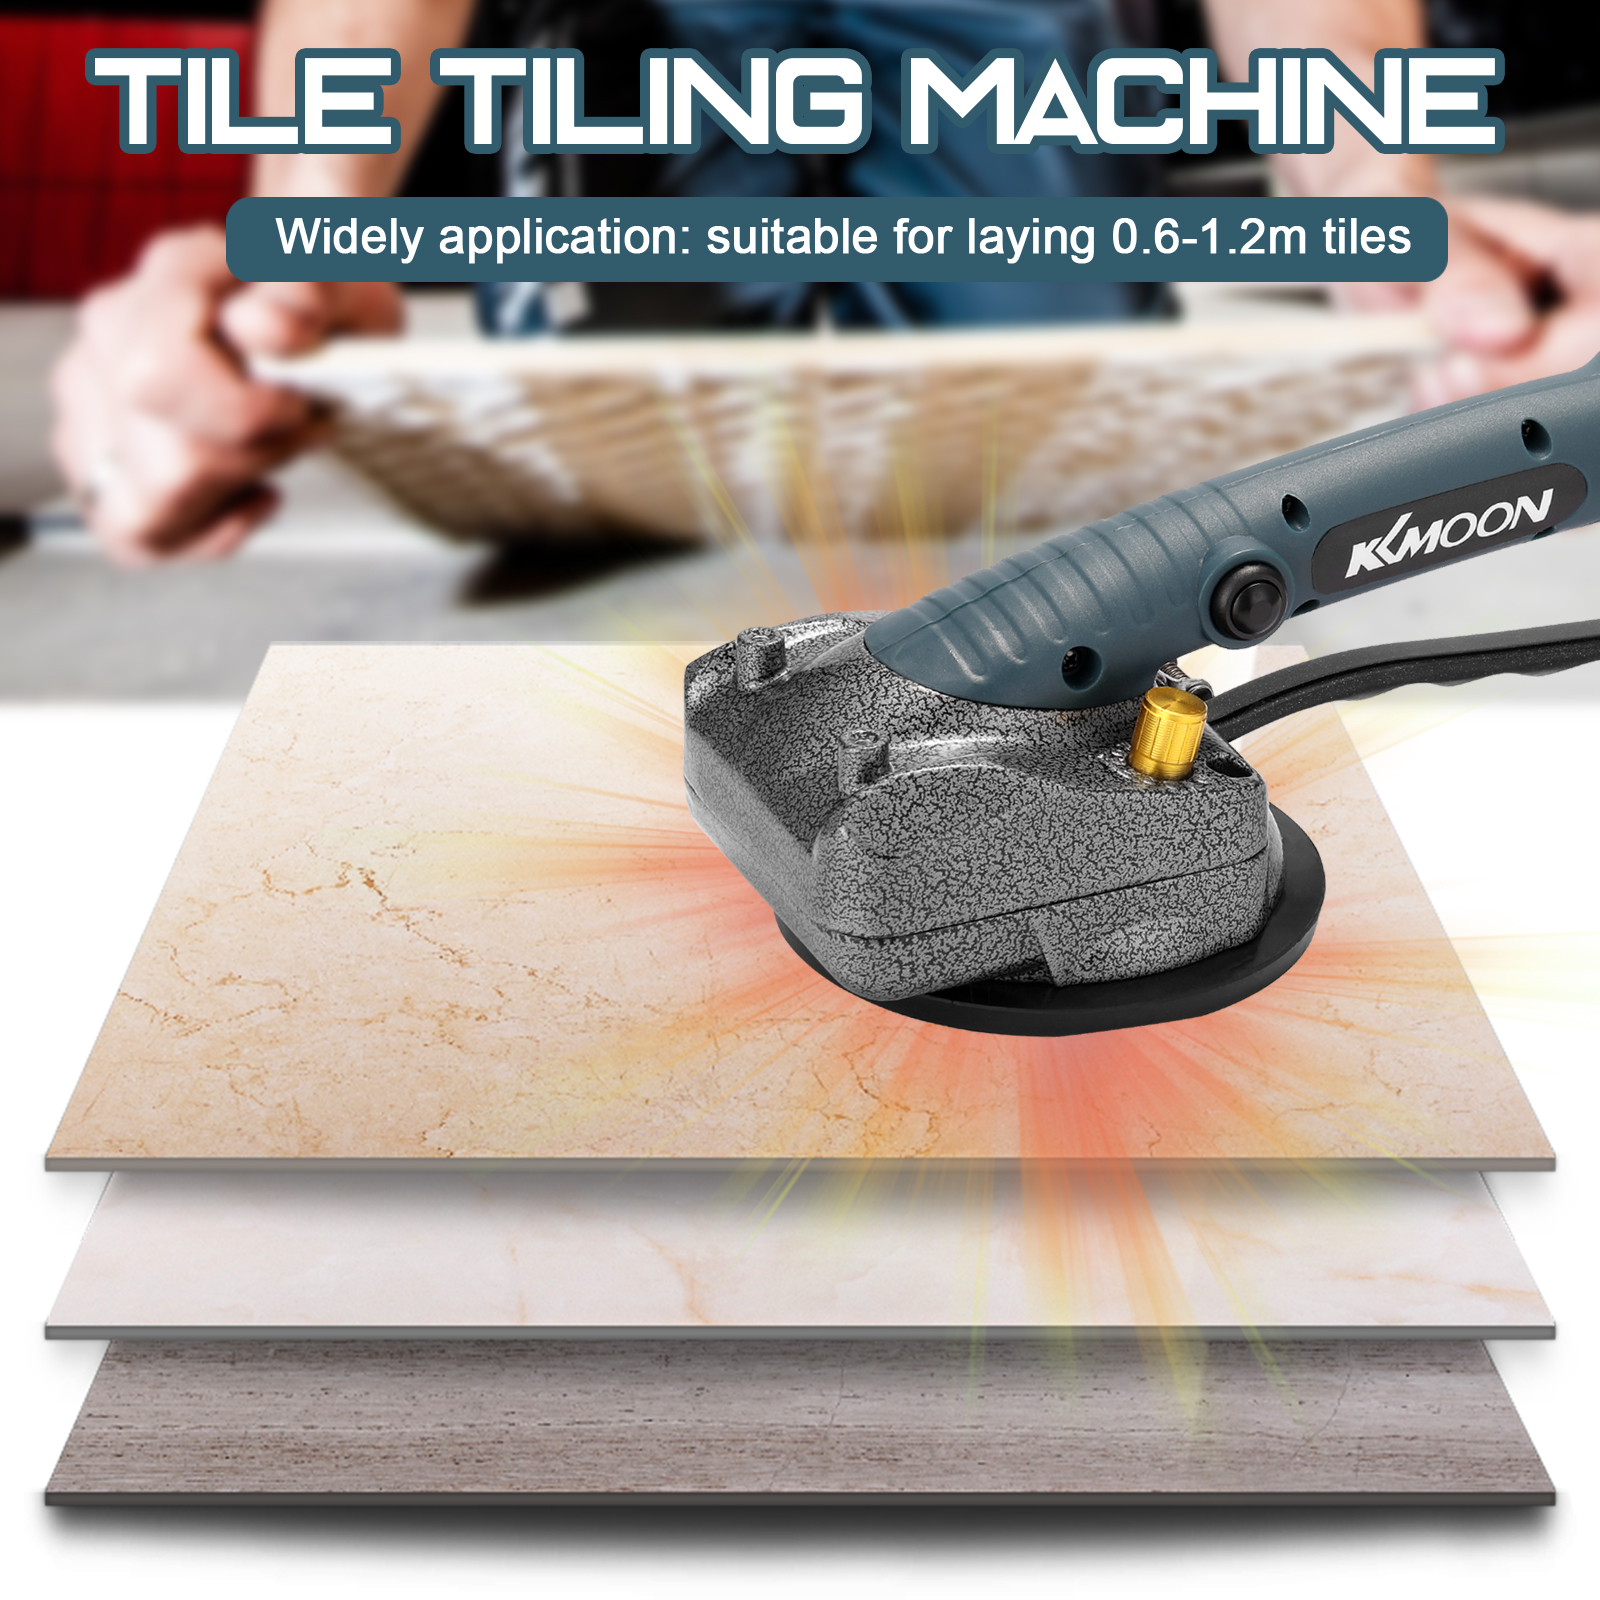 10-150Hz Tile Tiling Machine Wall Floor Tiles Laying Vibrating Tool With 100*100mm Suction Cup With 45kg Adsorption Capacity